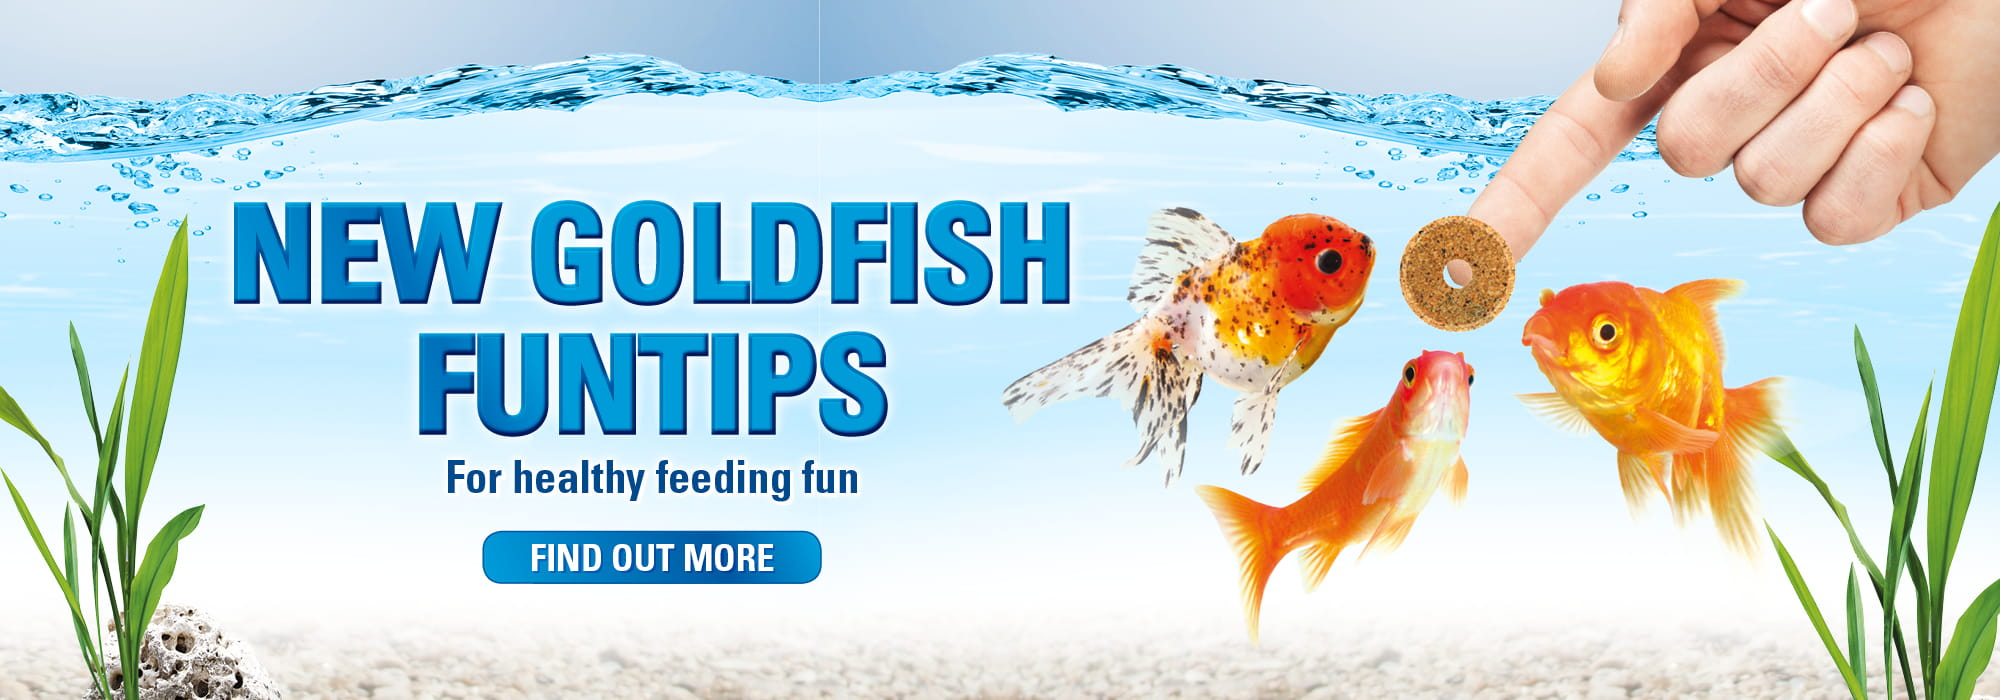 New Goldfish FunTips